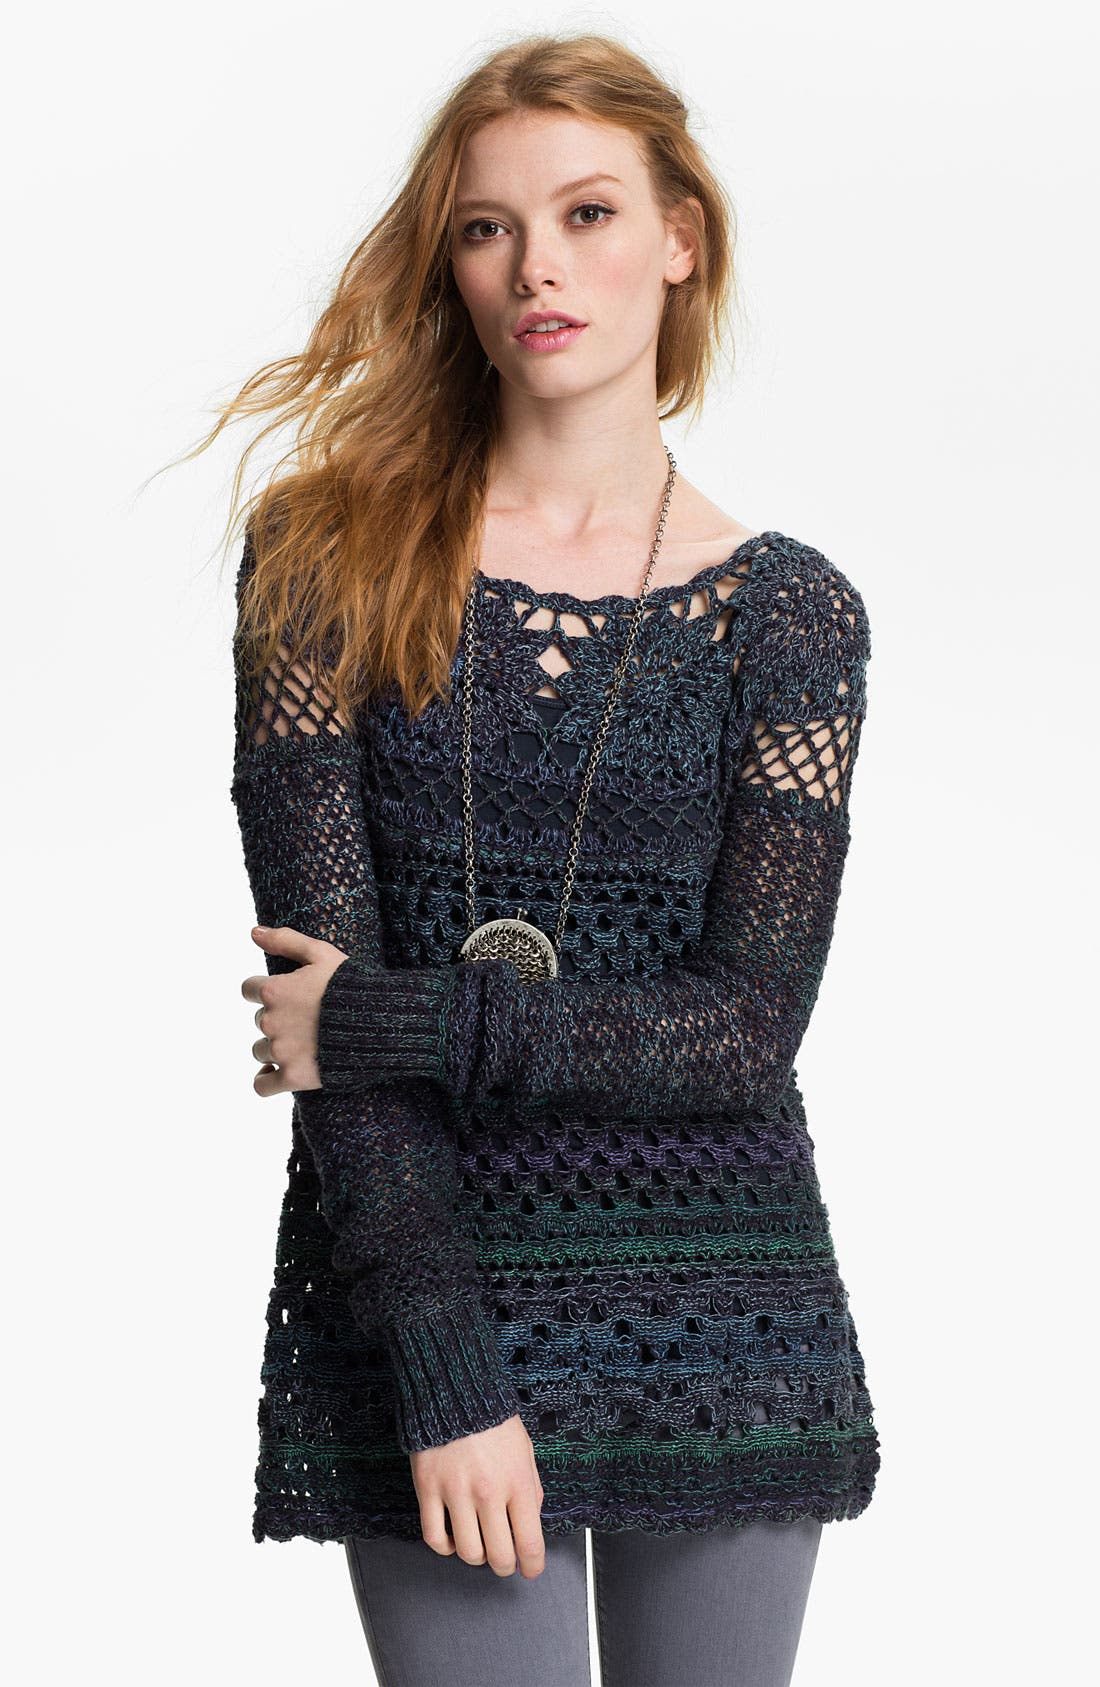 Alternate Image 1 Selected - Free People 'Ring of Roses' Crochet Sweater